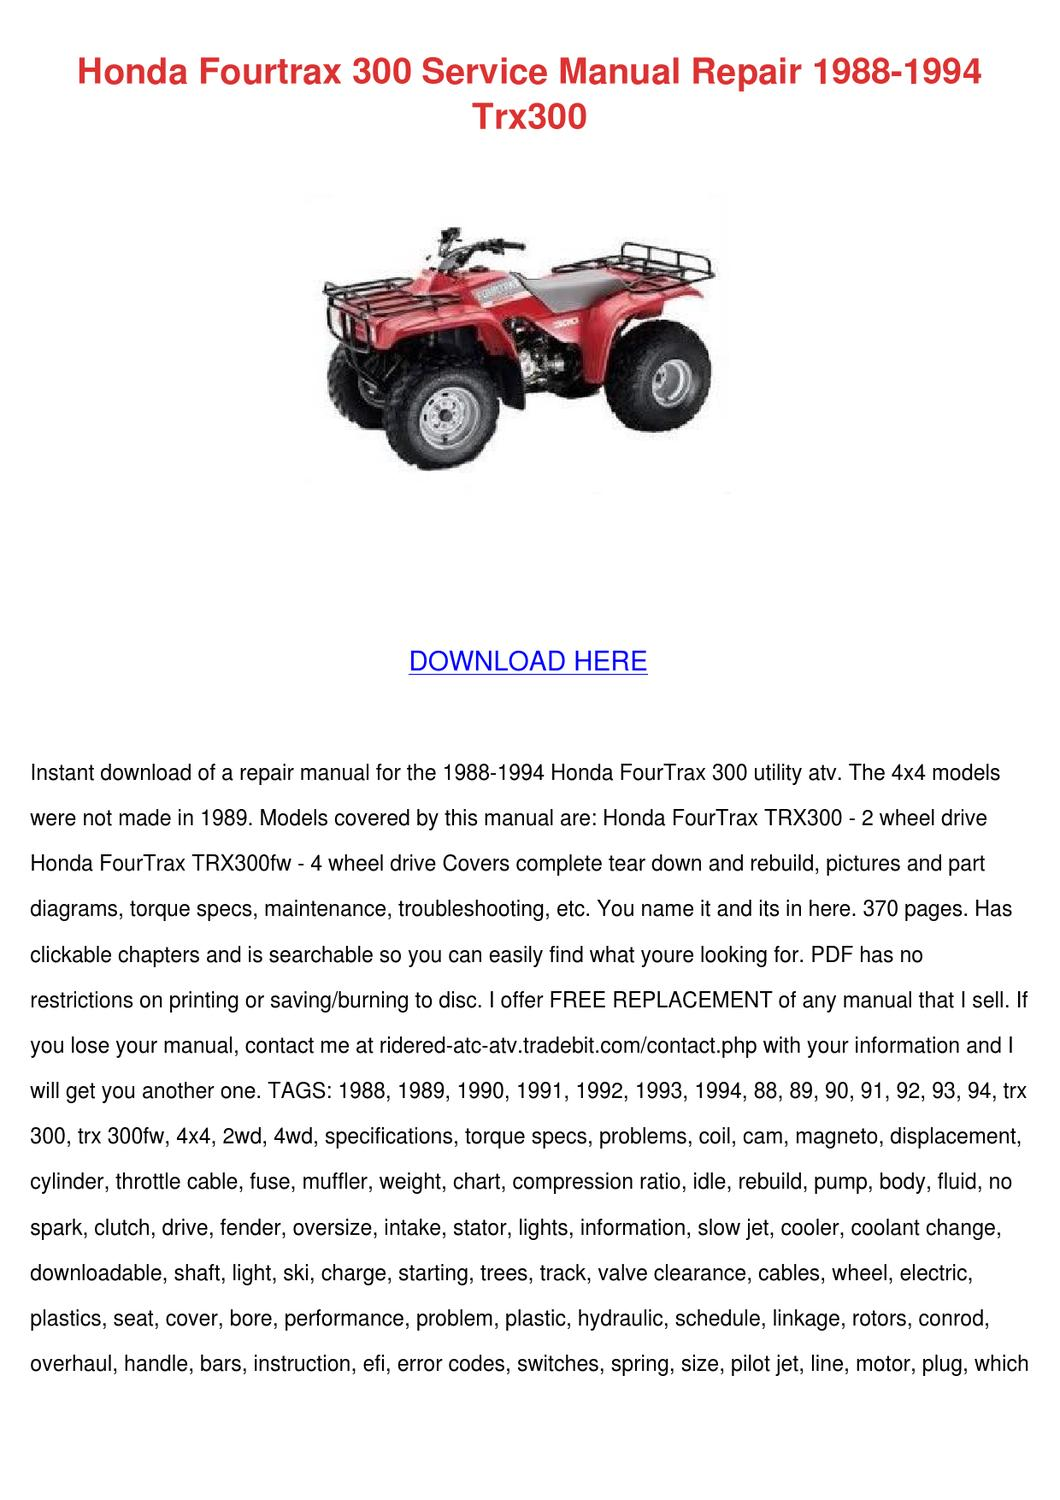 Honda Fourtrax 300 Service Manual Repair 1988 By Eddycartwright Issuu 1986 Trx 125 Wiring Diagram